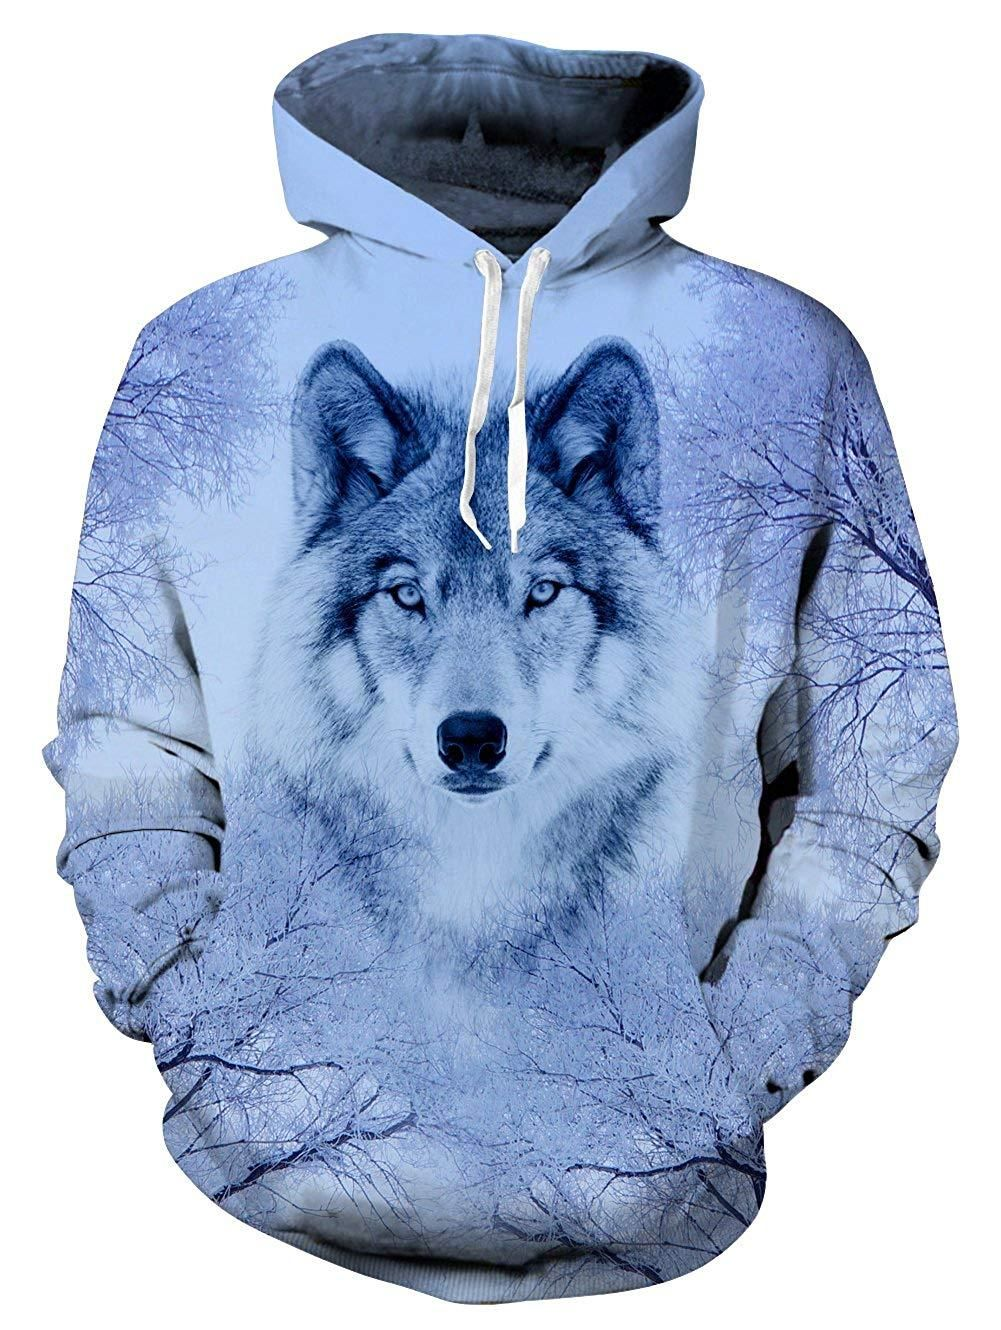 Unisex Animal Wolf 3D Graphic Print Hoodie Sweater Sweatshirt Pullover Tops